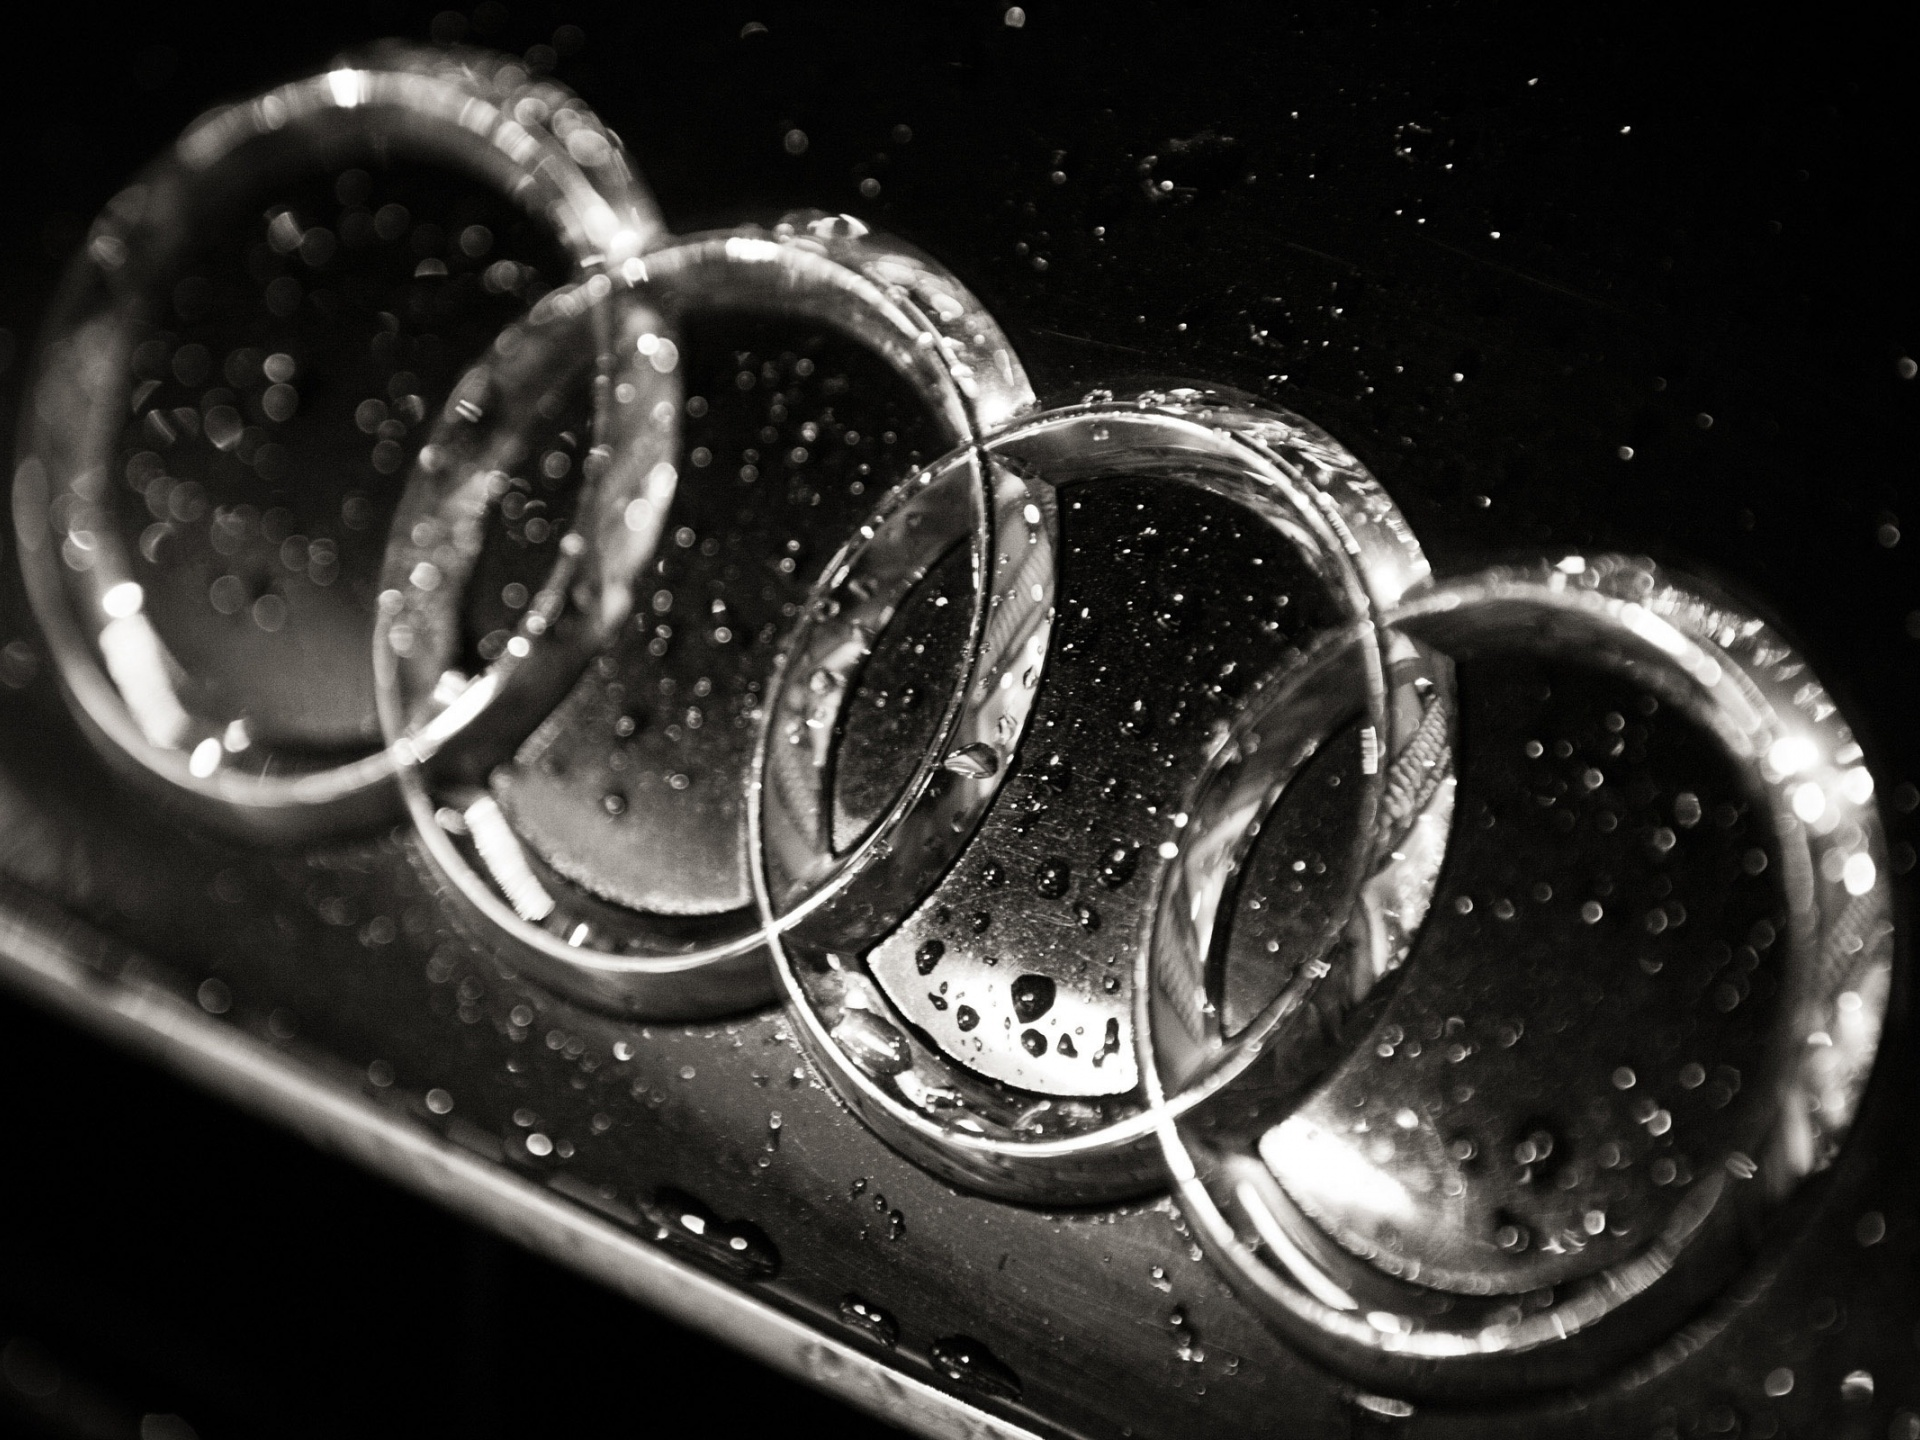 1920x1440 Wet Audi logo, cars